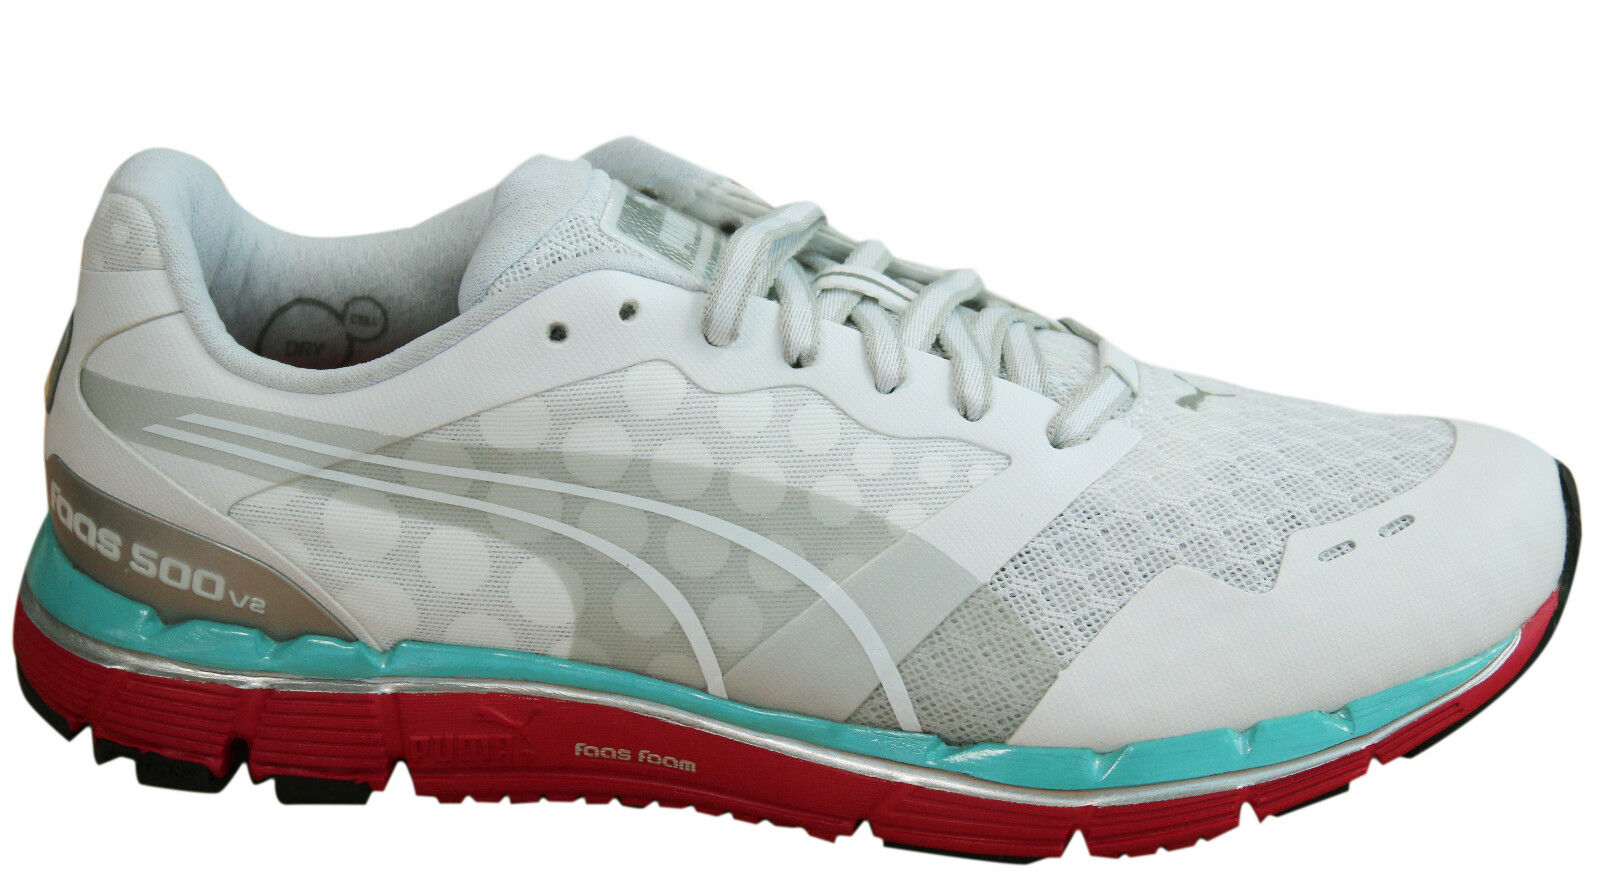 Puma Faas 500 V2 Womens Trainers Lace Up Running shoes Mesh White 186489 01 D26